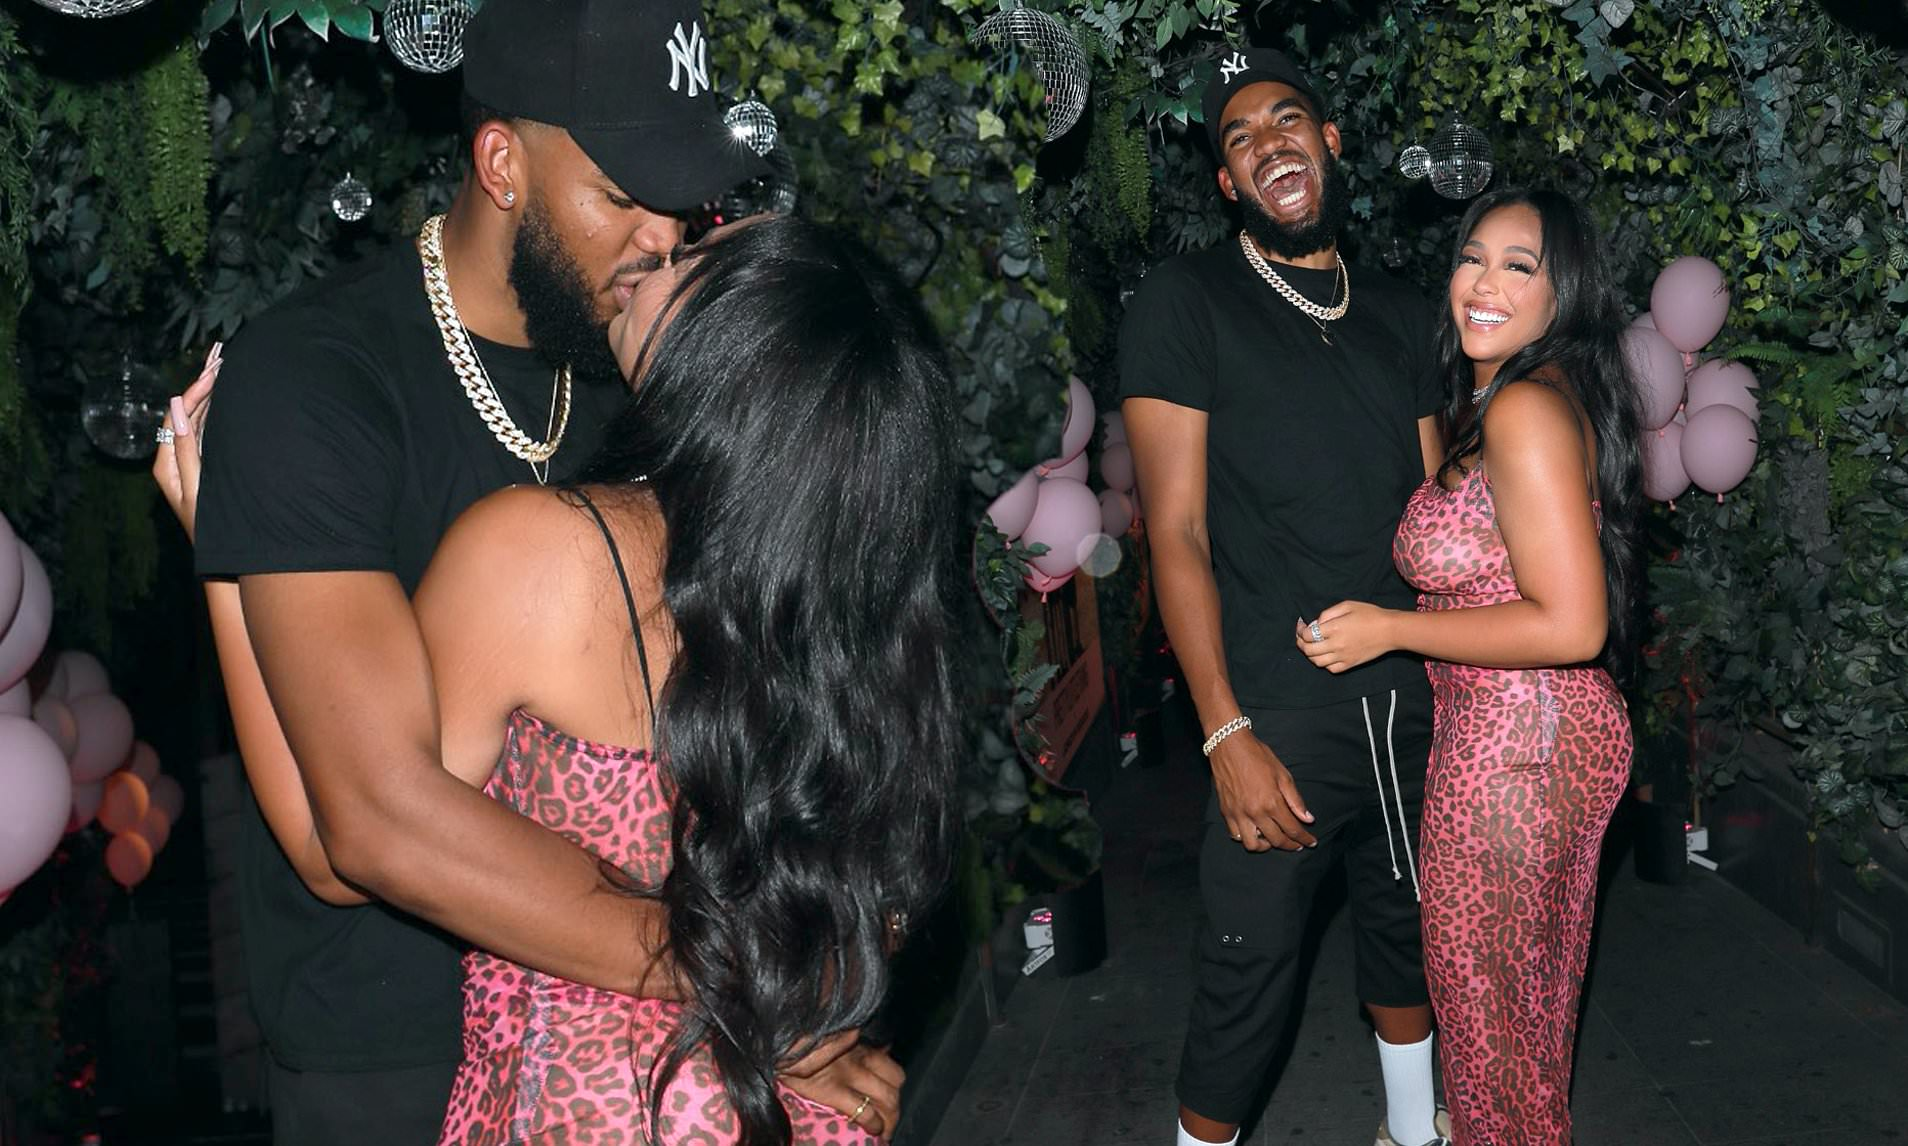 jordyn-woods-posts-a-video-featuring-her-mom-and-bf-who-knows-her-better